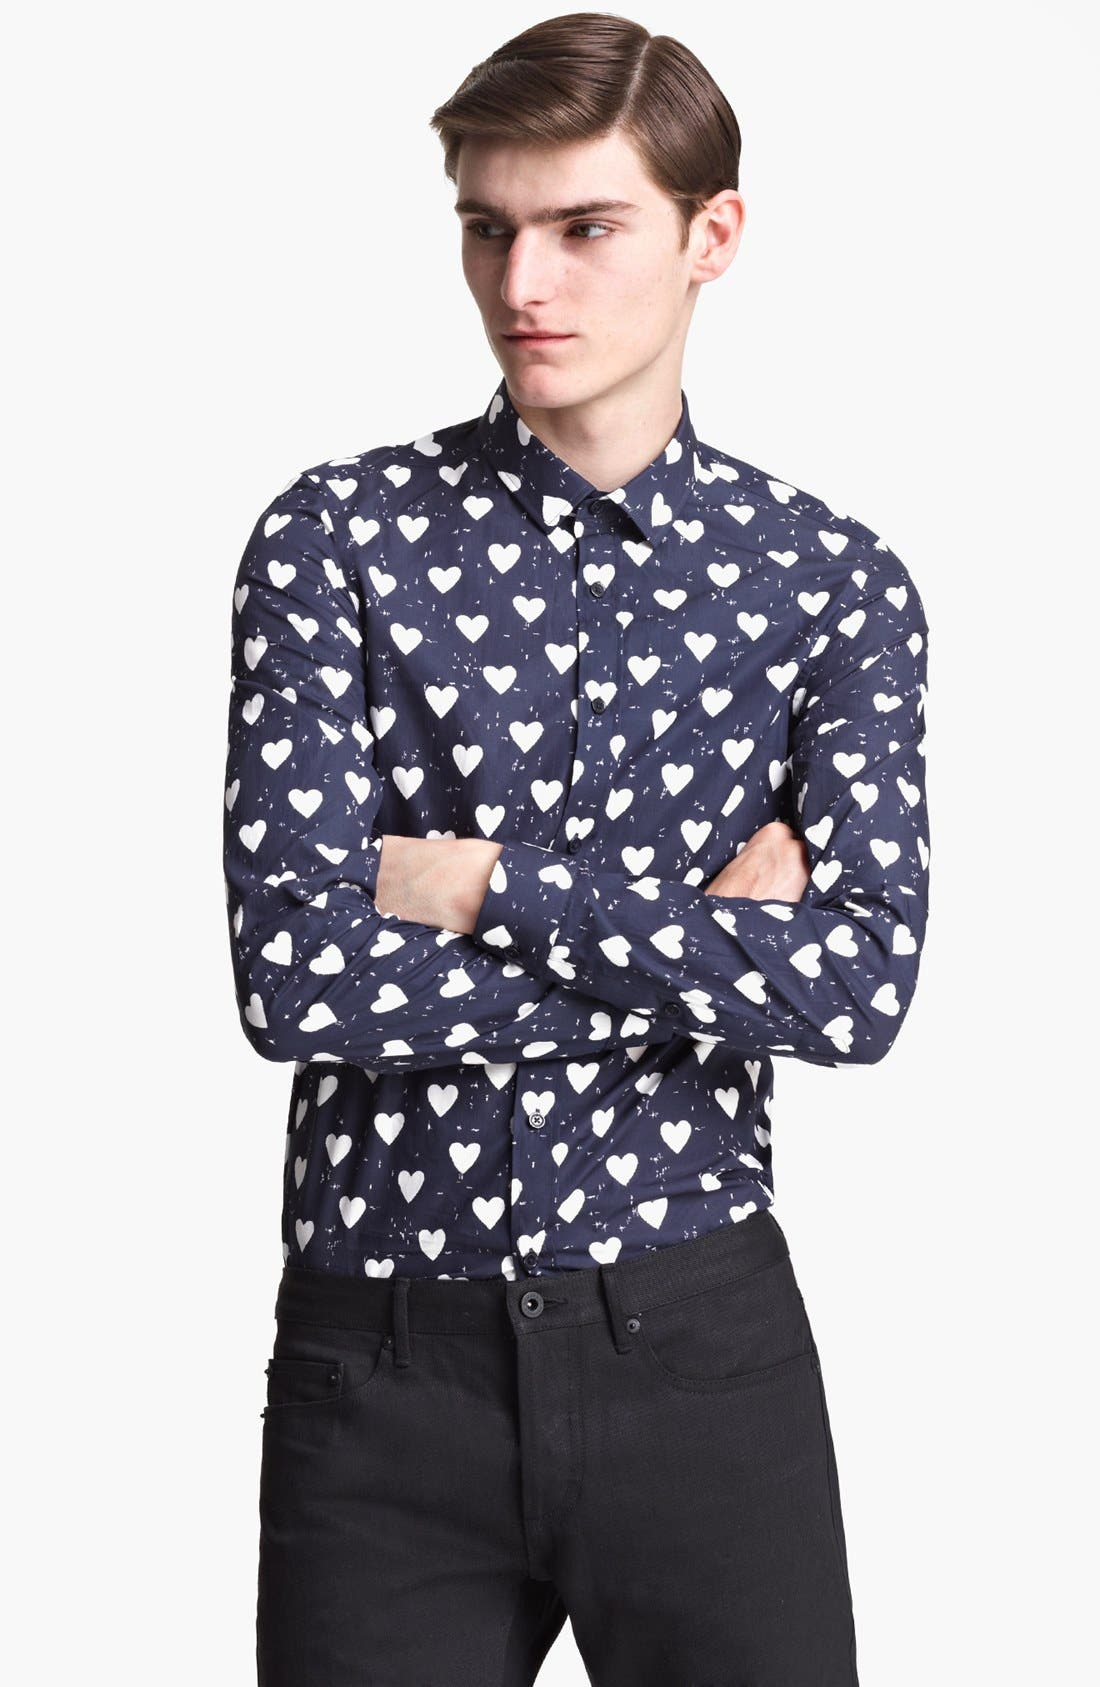 Alternate Image 1 Selected - Burberry Prorsum Heart Print Poplin Sport Shirt